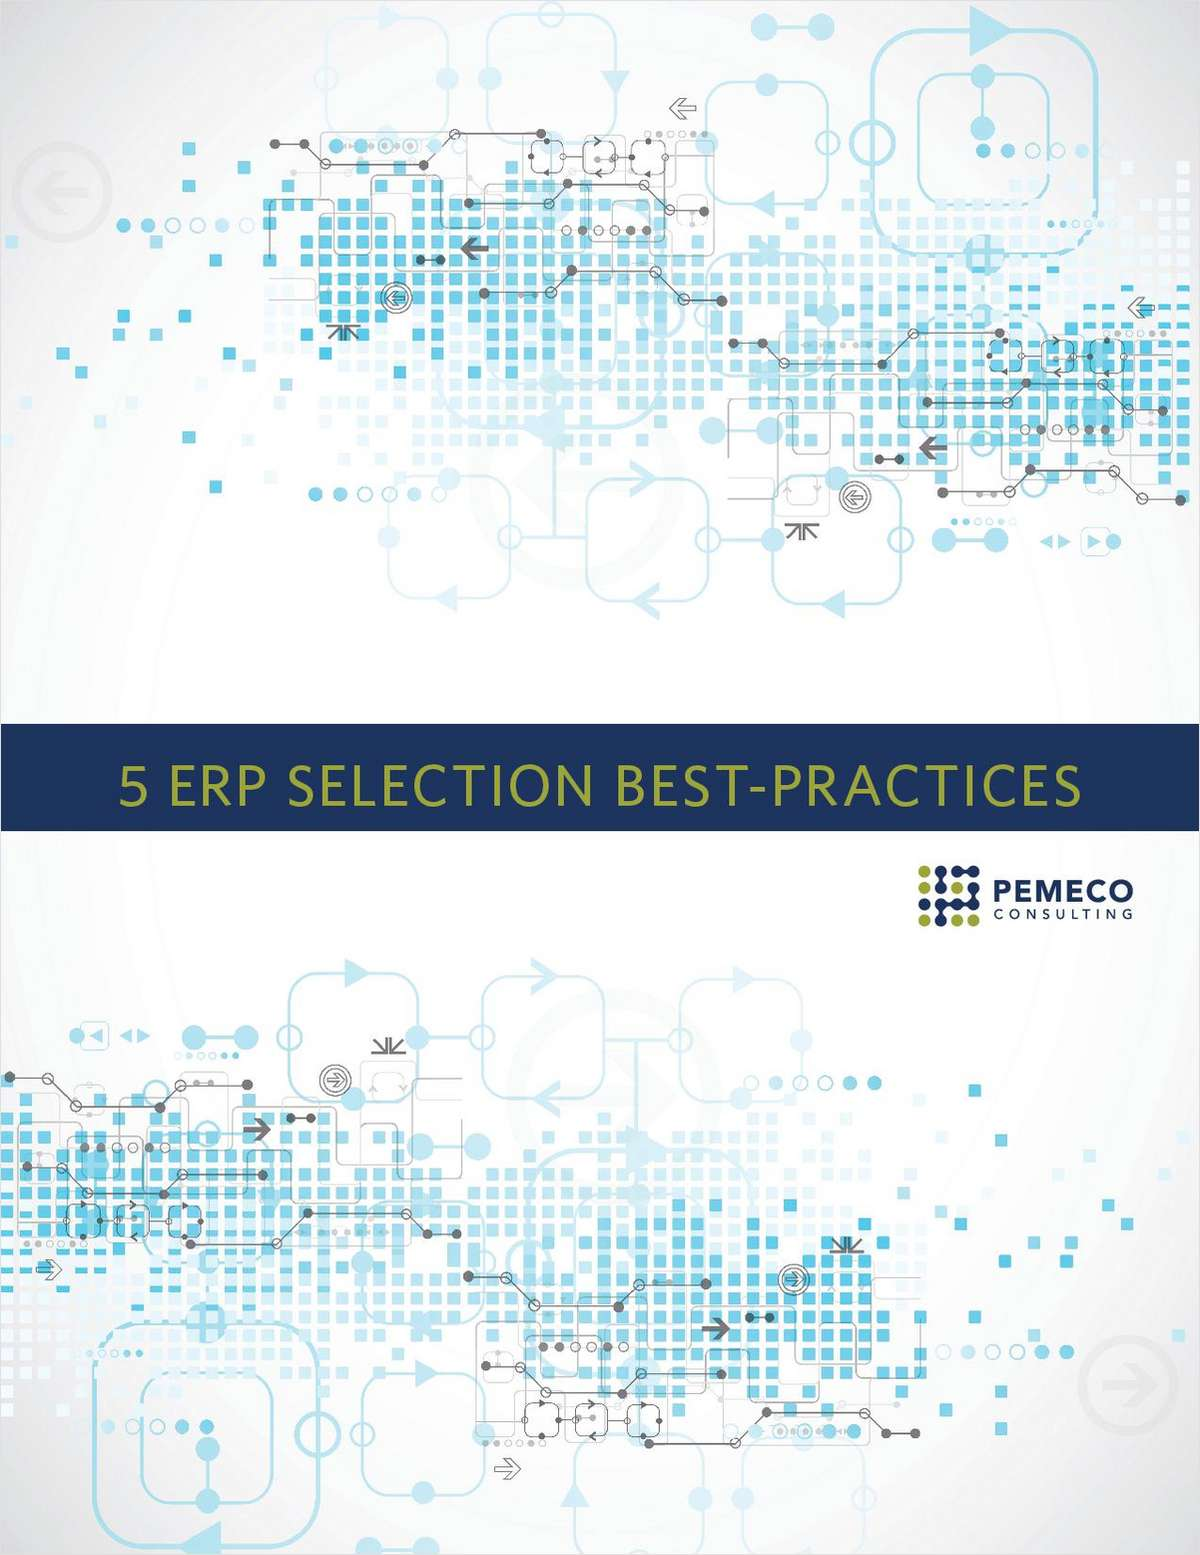 5 ERP Selection Best-Practices: Learn How to Find the Right Fitting Vendor and Solution